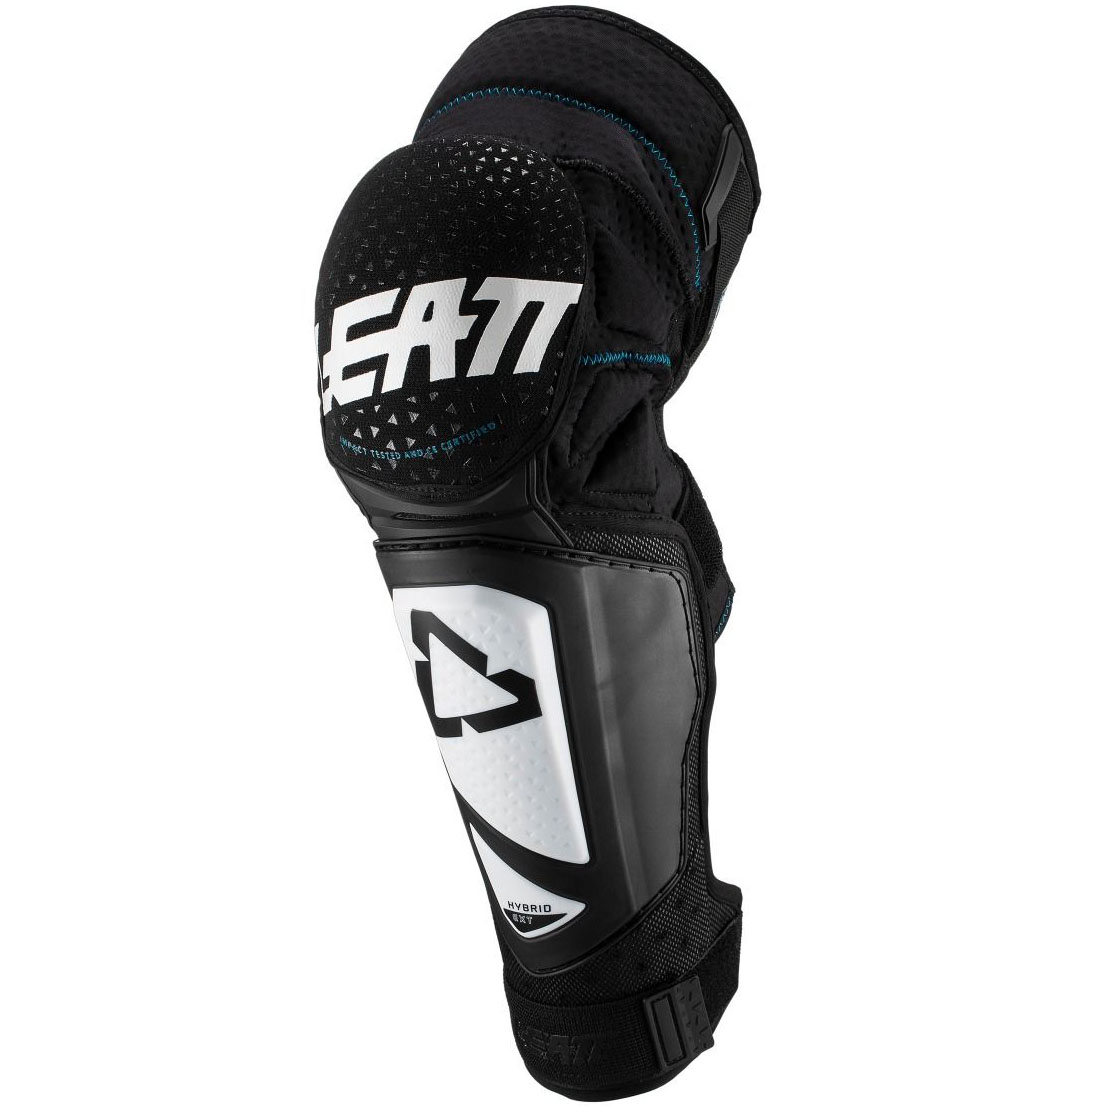 Leatt - 2019 3DF Hybrid EXT Knee & Shin Guard Black/White защита колен, черно-белая